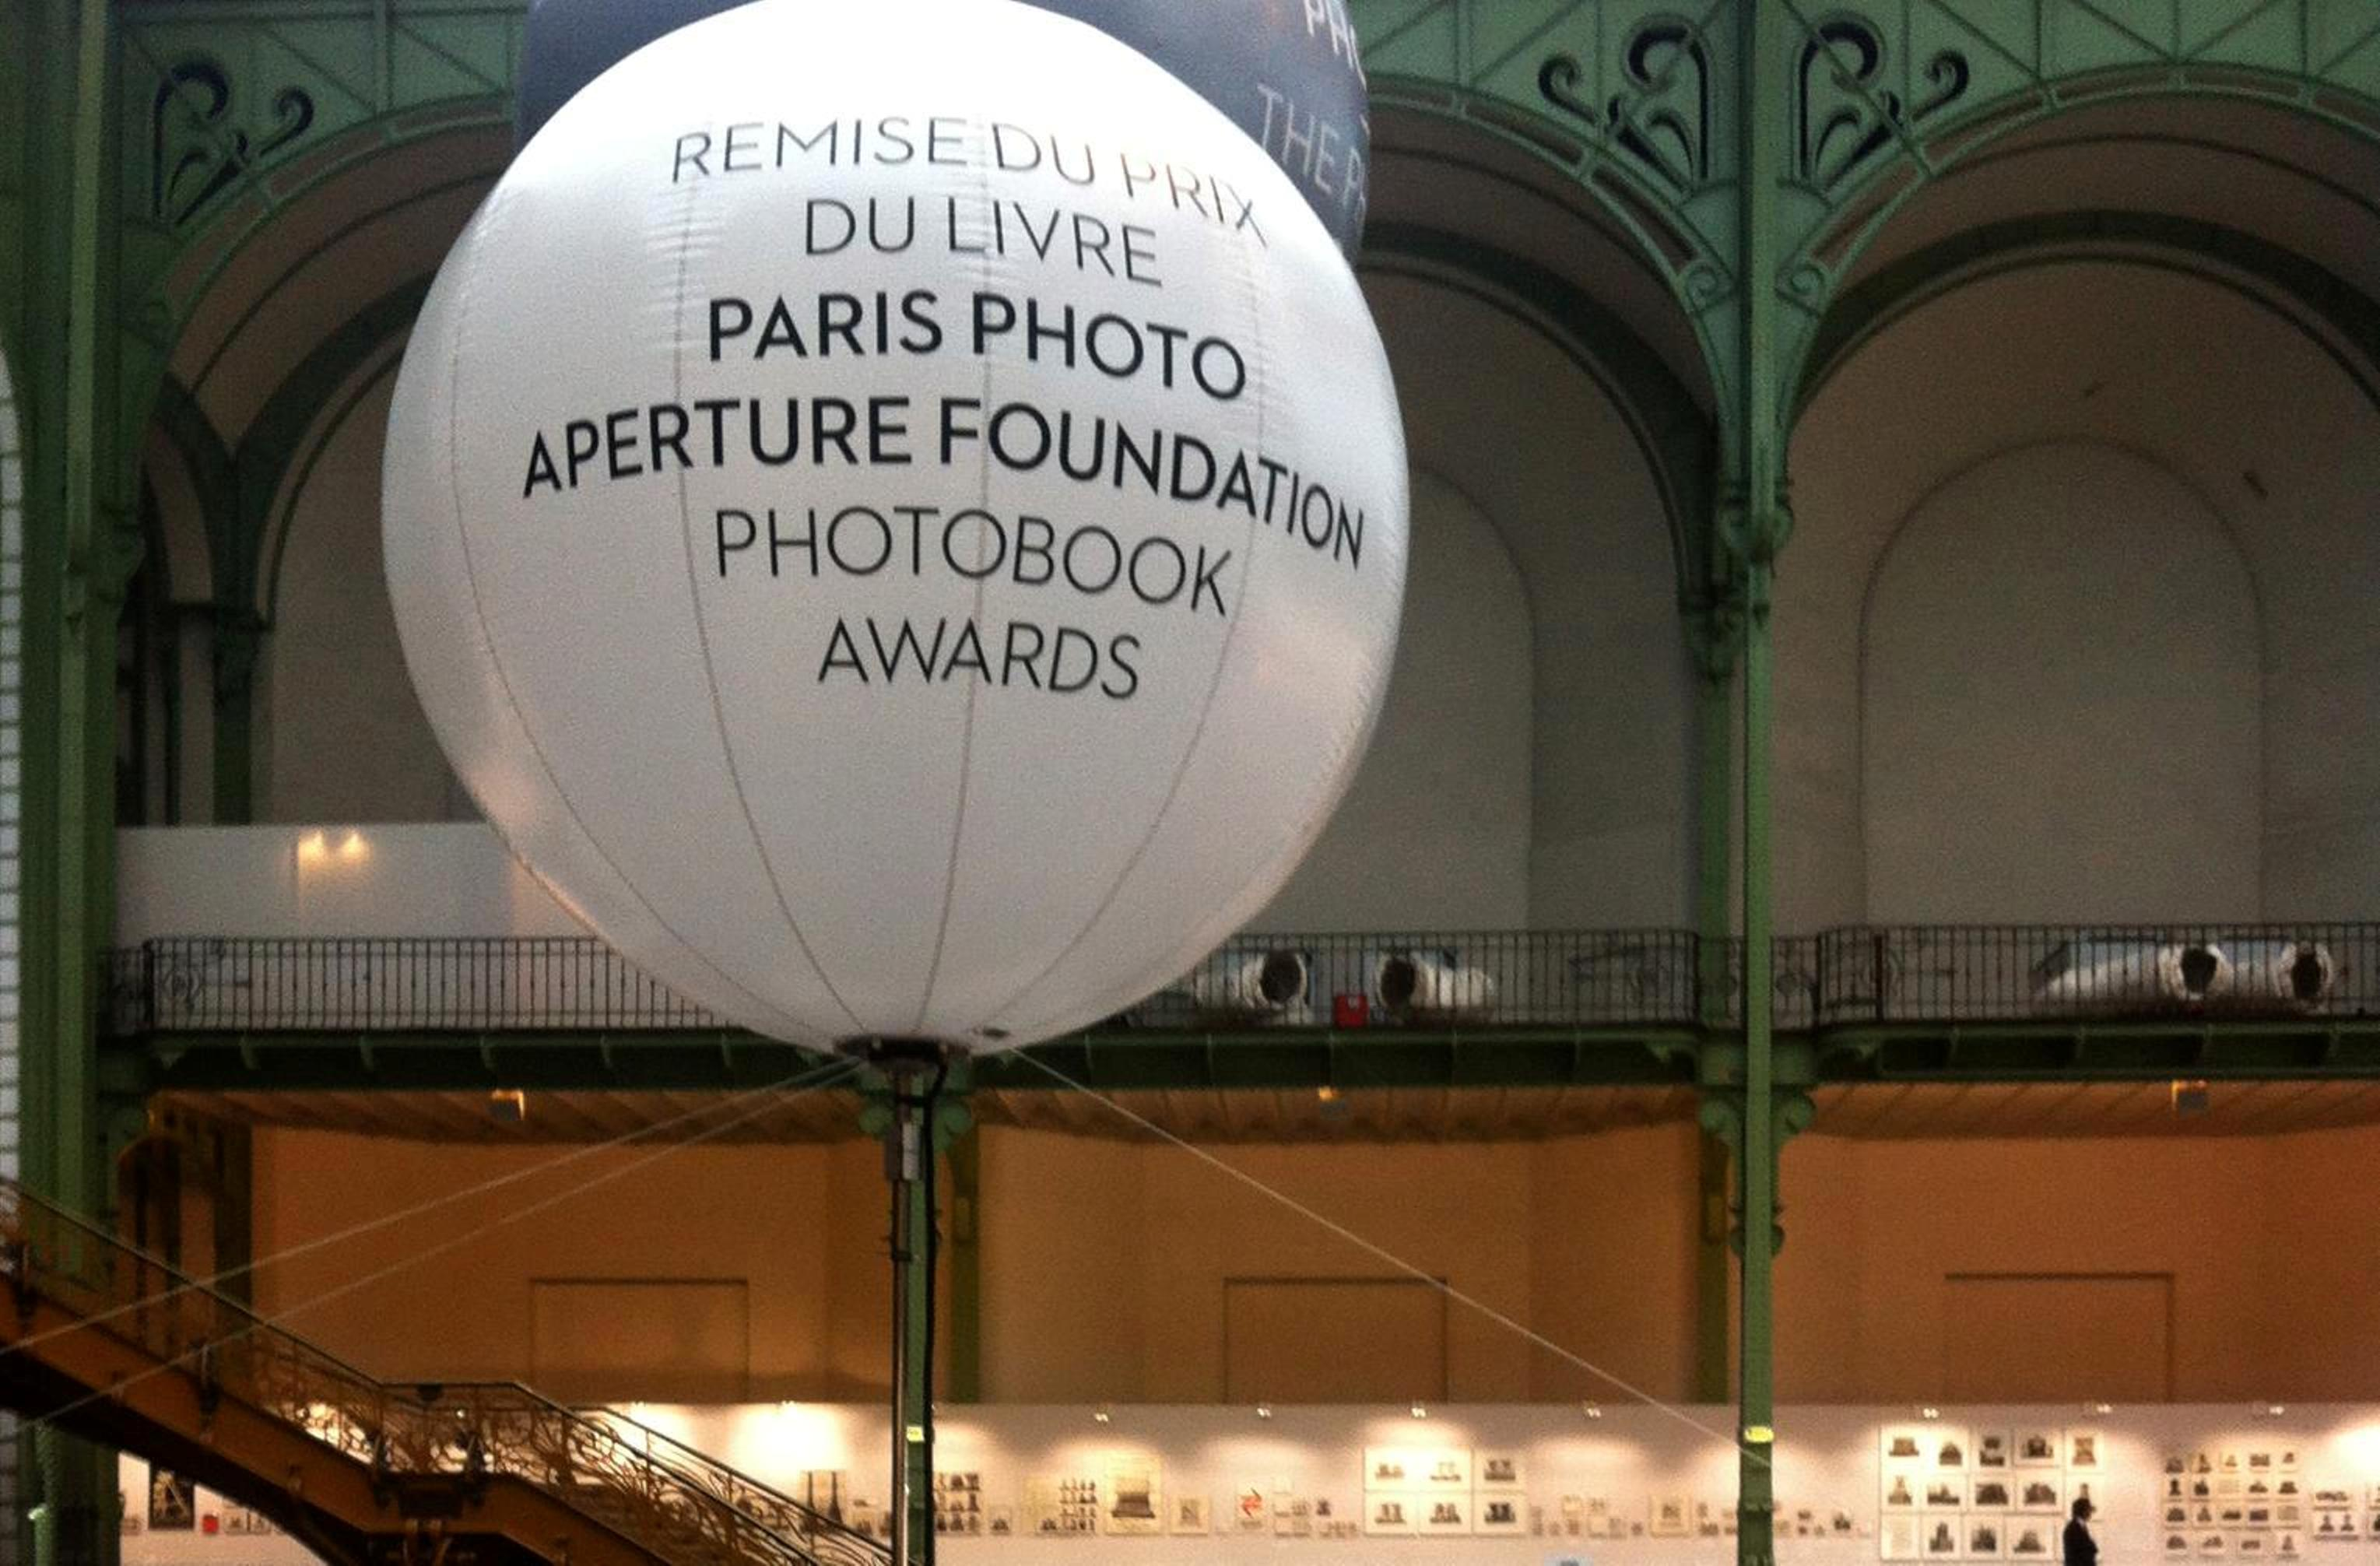 Paris Photo Aperture Foundation Photobook Awards 1